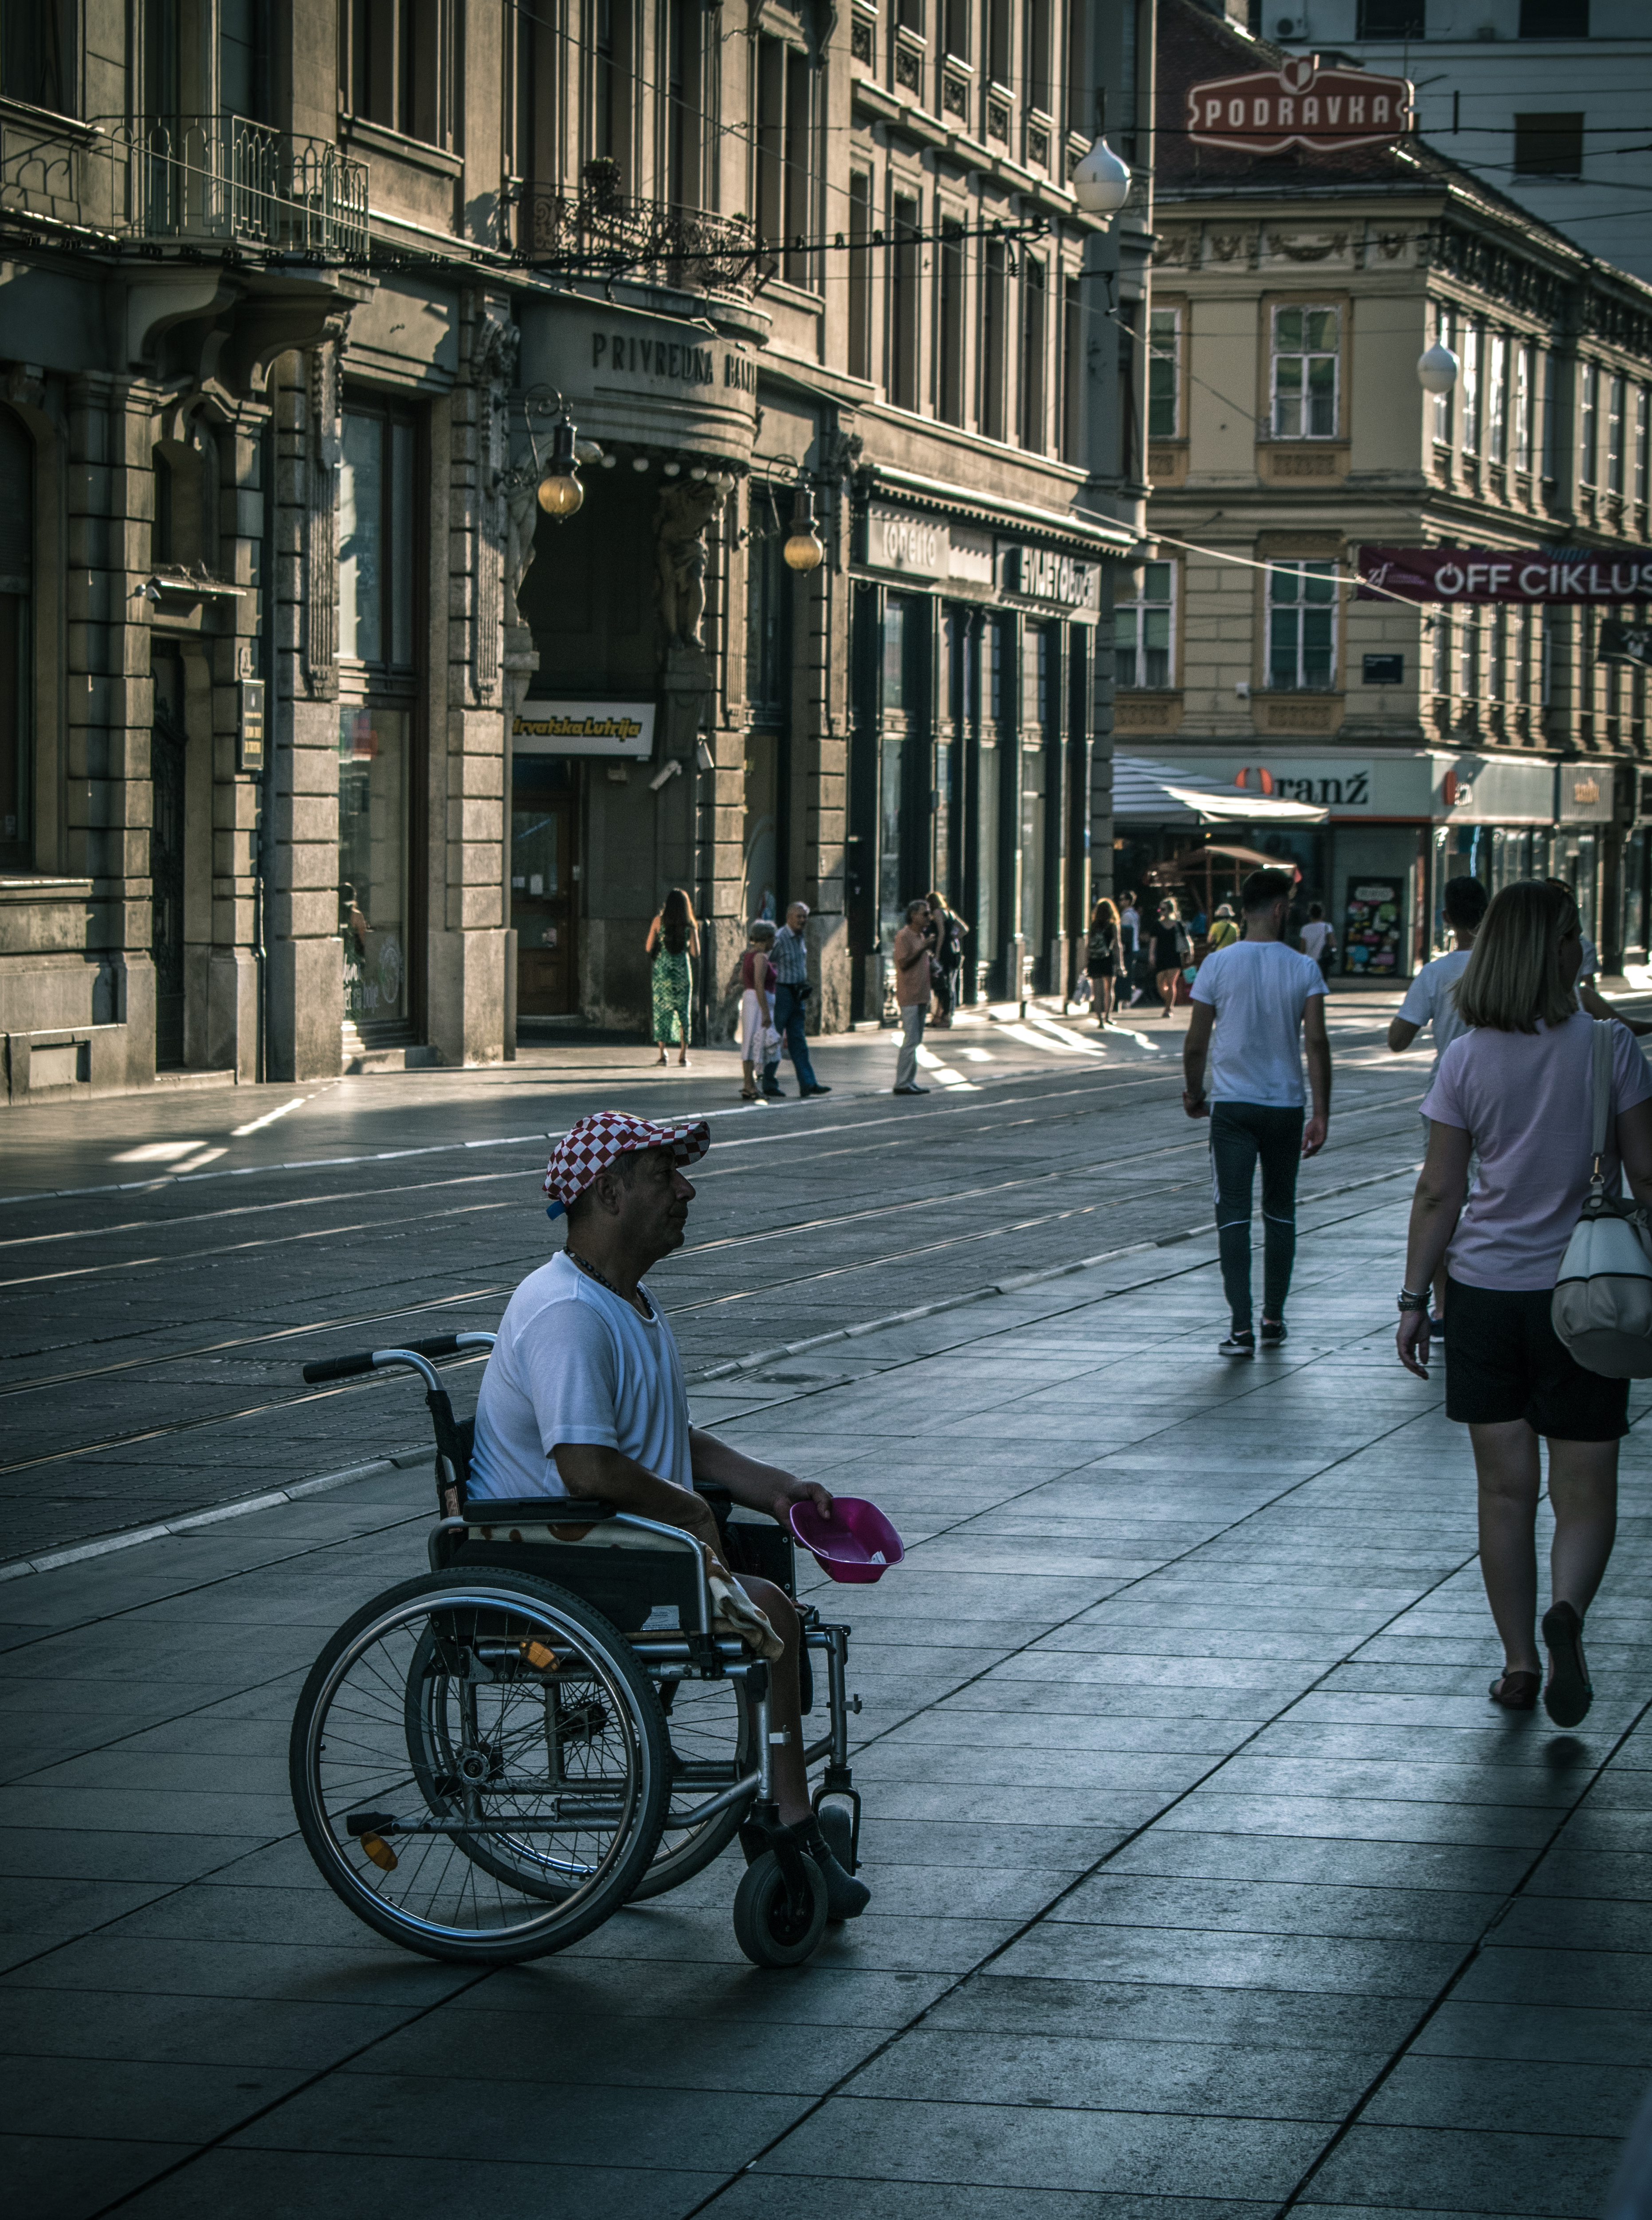 Streets of Zagreb